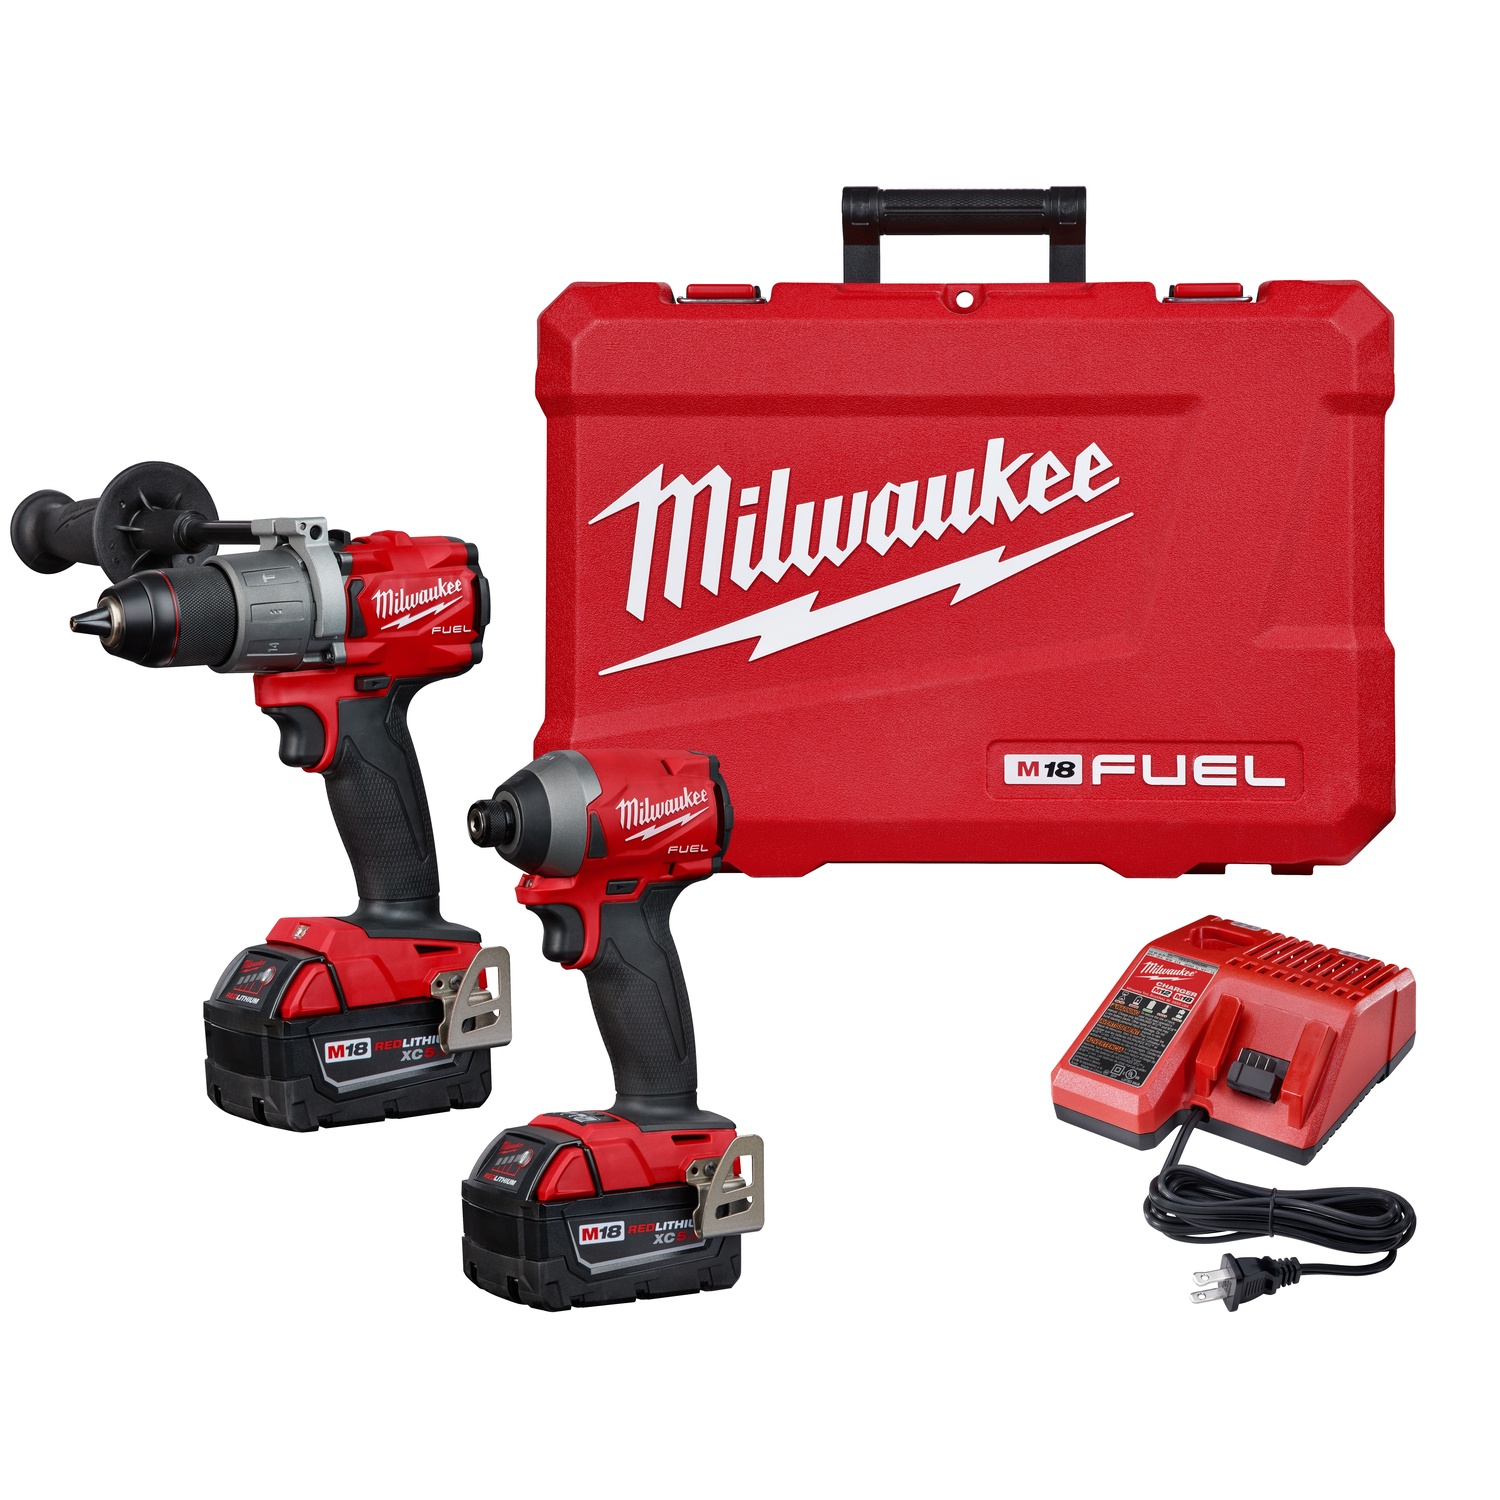 Hand Tools And Power Tool Accessories At Ace Hardware